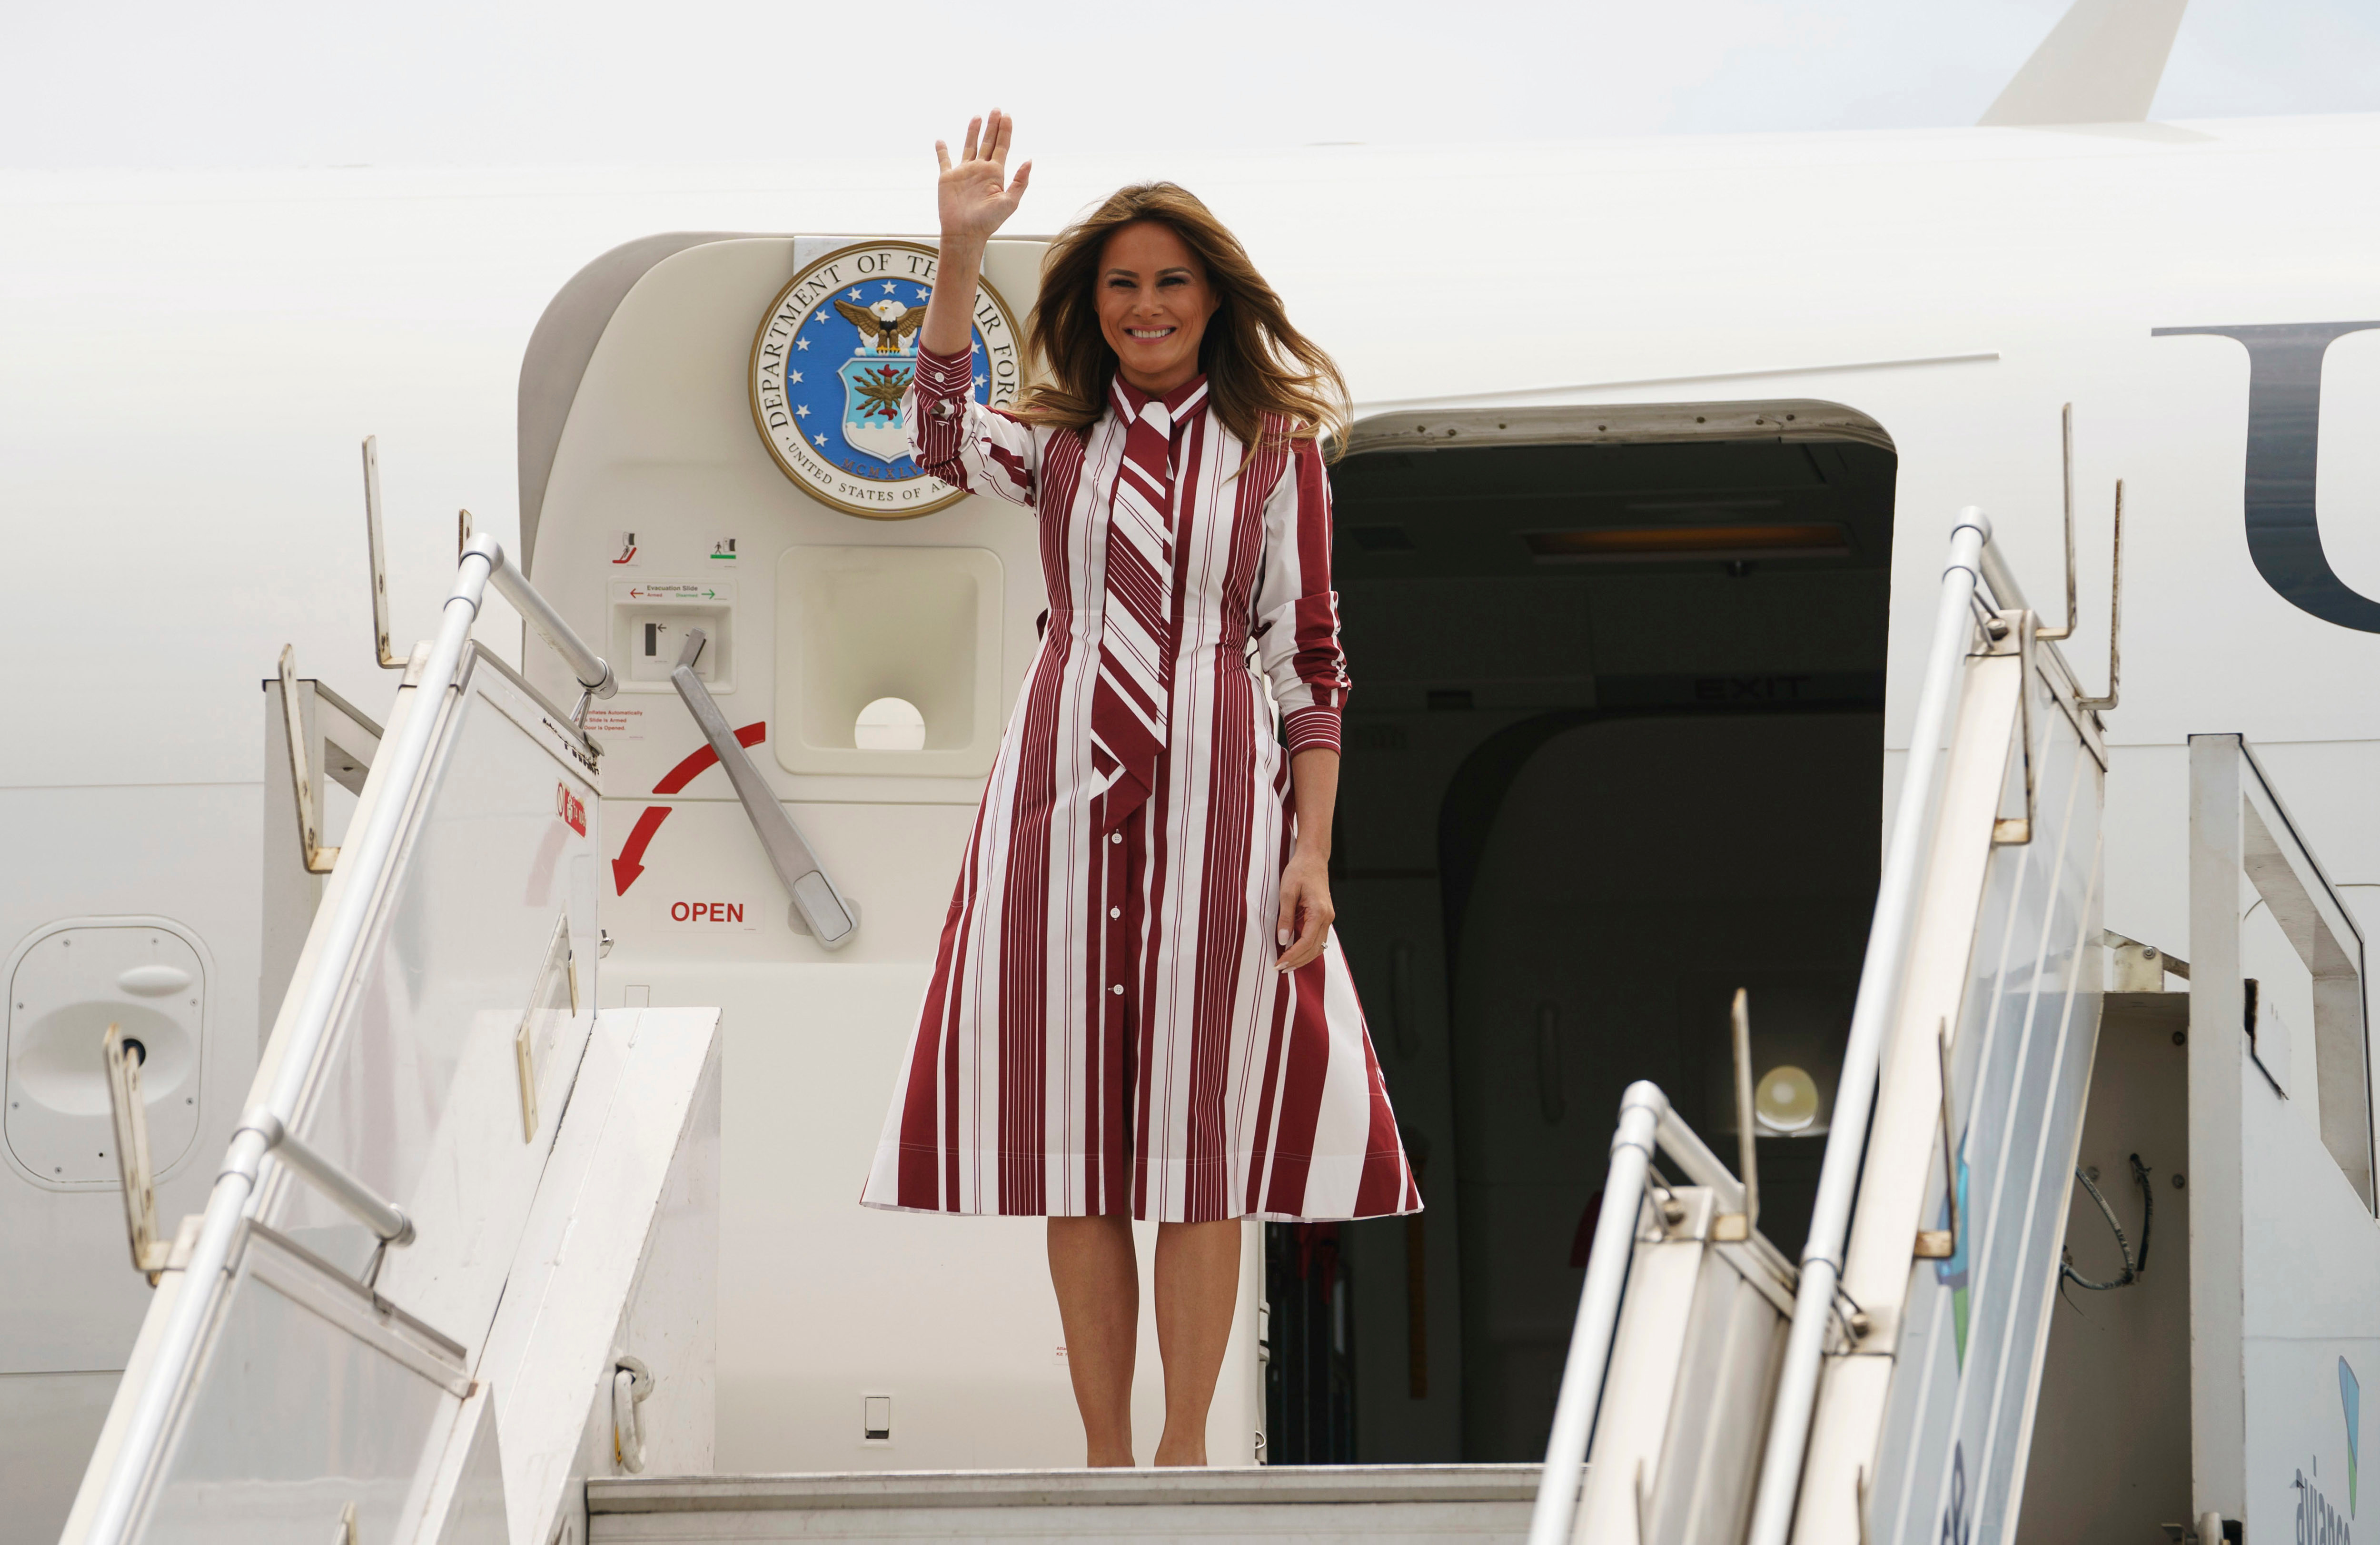 First lady Melania Trump arrives at Kotoka International Airport in Accra, Ghana, . Trump is visiting Africa on her first big solo international trip, aiming to make child well-being the focus of a five-day, four-country tourMelania Trump Africa, Accra, Ghana - 02 Oct 2018